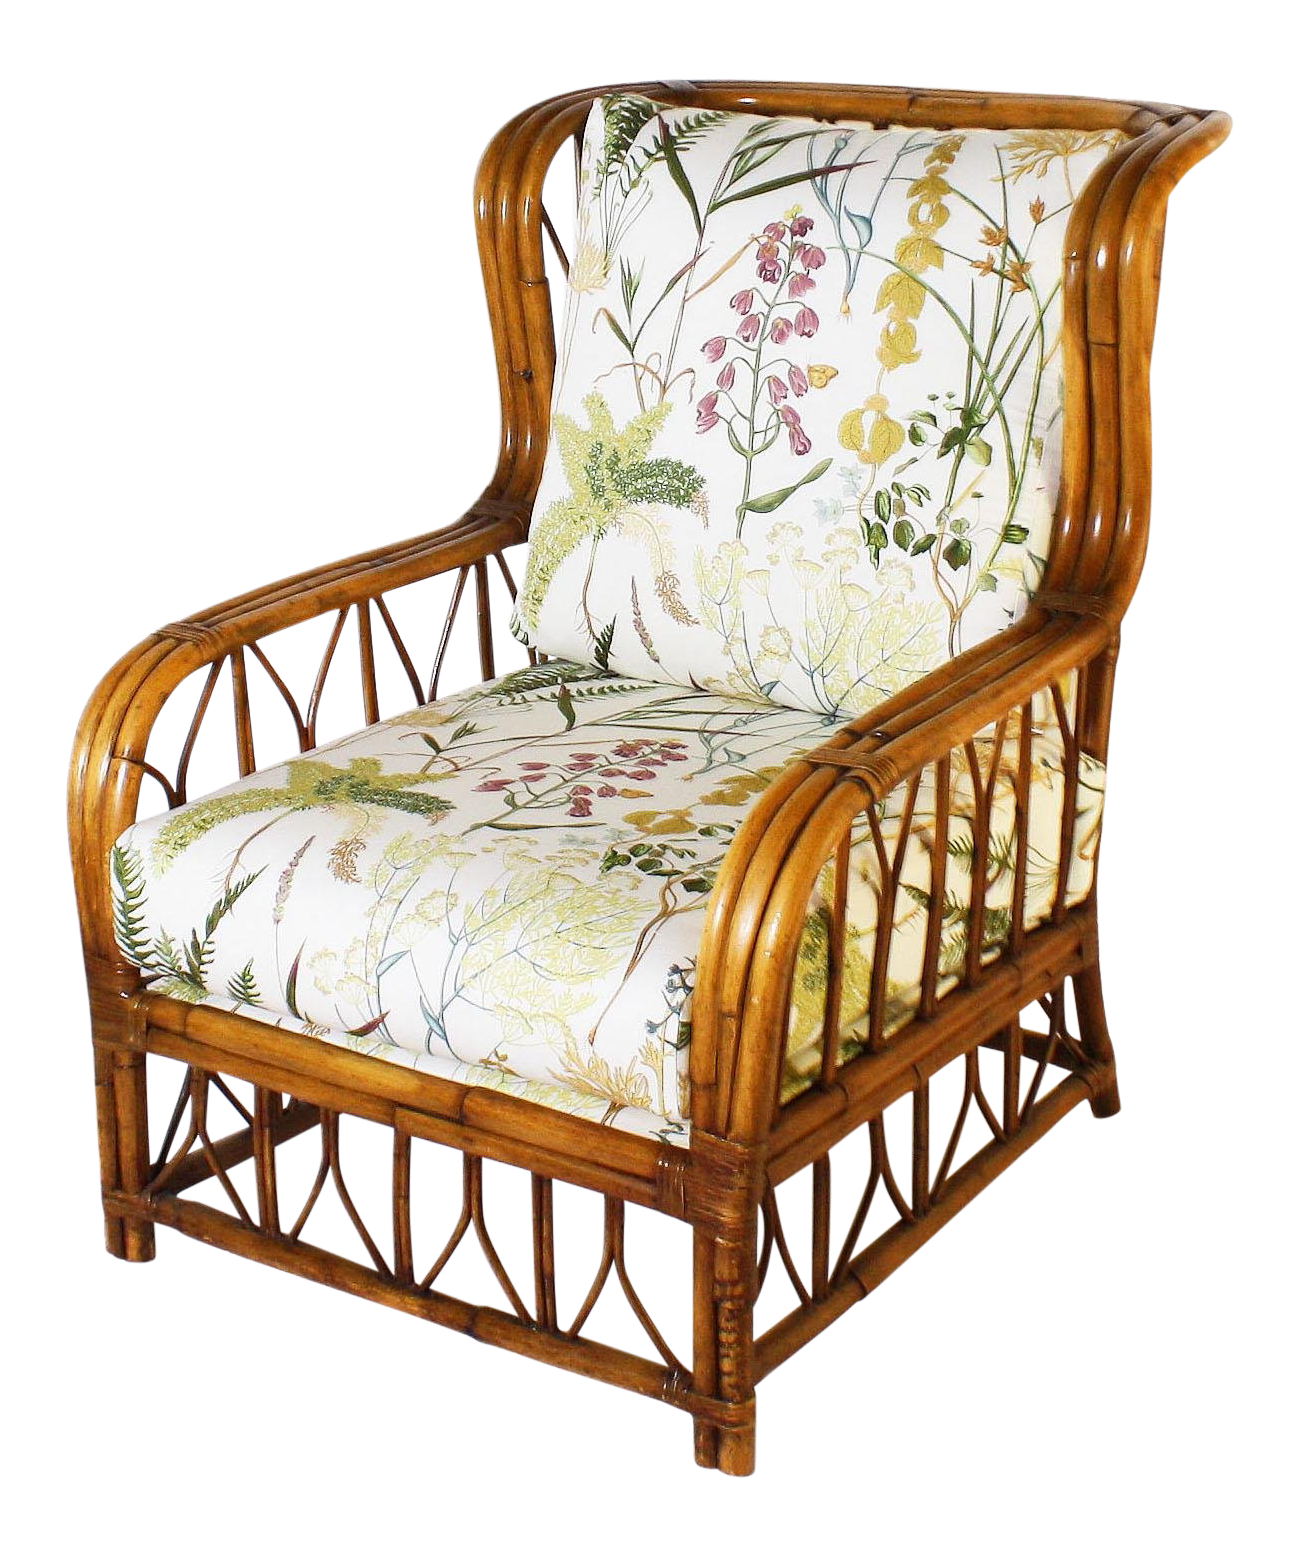 Merveilleux 1960s Vintage Rattan Chair  With Botanical Print 4008?aspectu003dfitu0026heightu003d1600u0026widthu003d1600